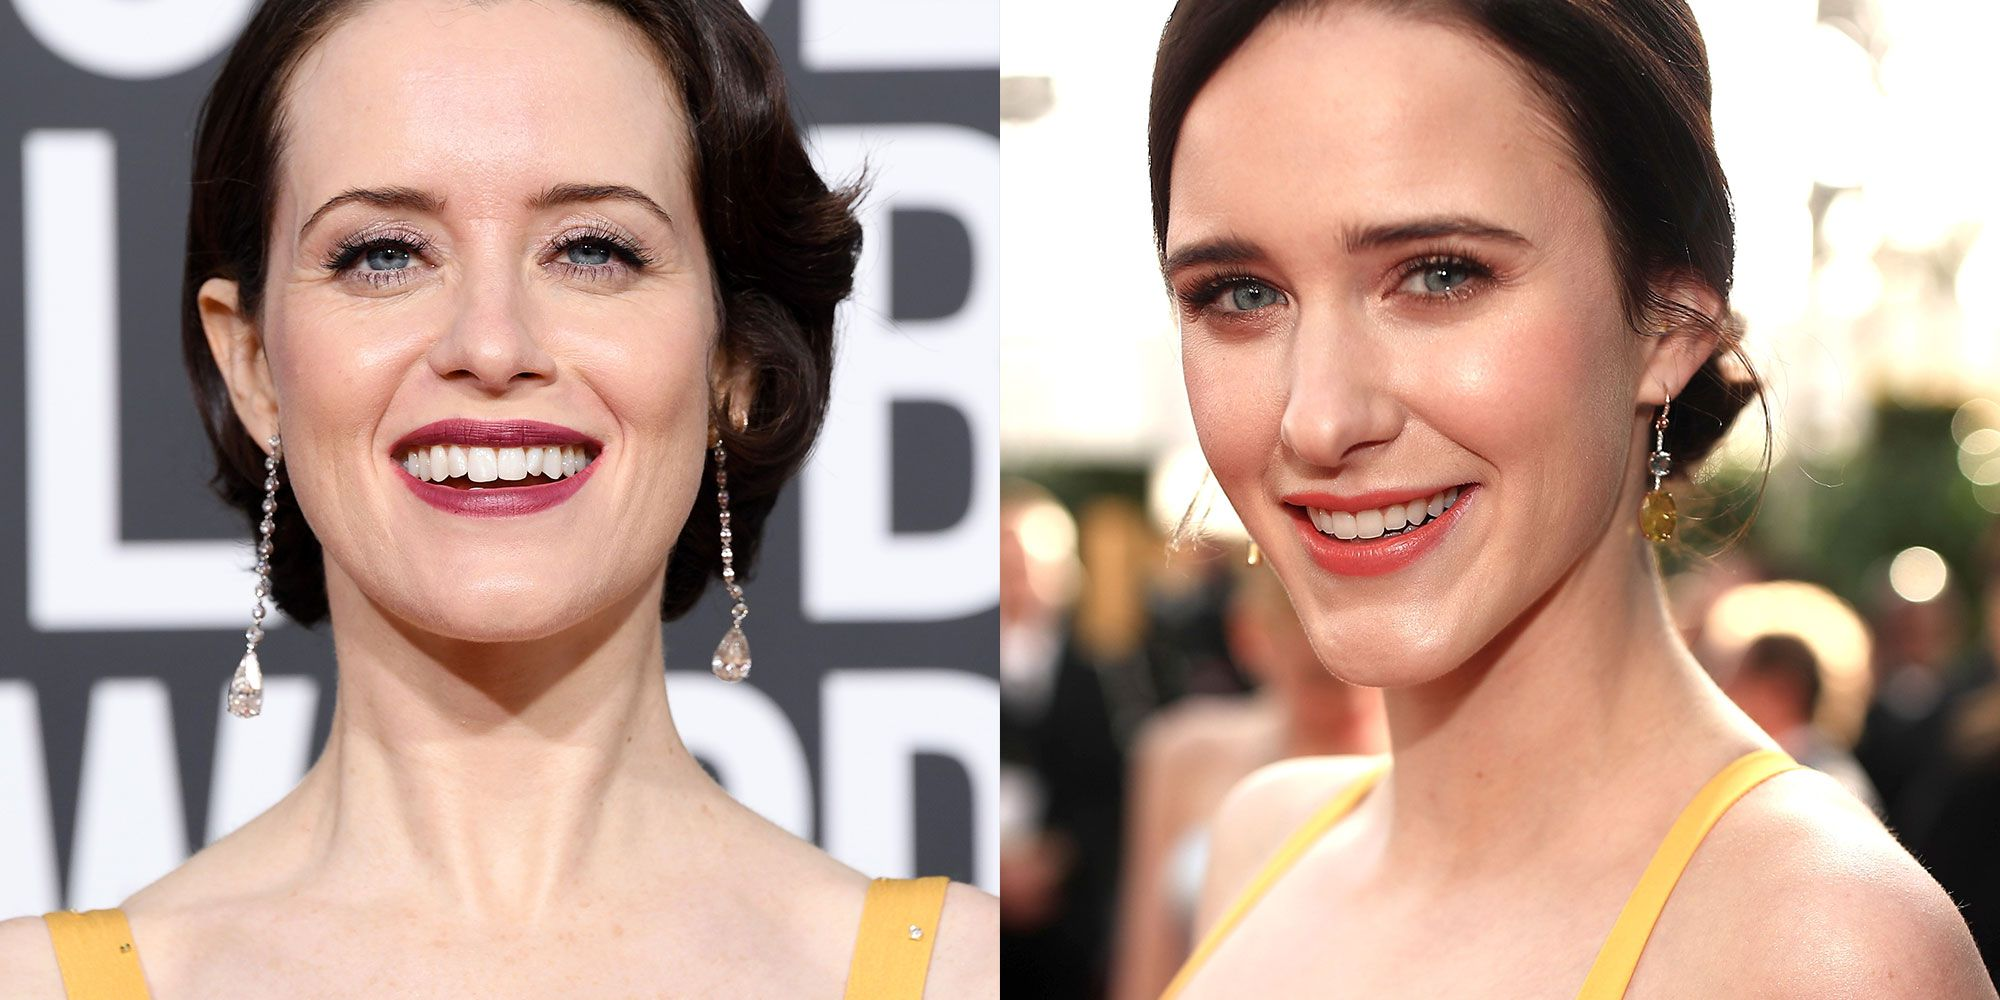 Rachel Brosnahan and Claire Foy Basically Just Wore the Same Dress to the Golden Globes